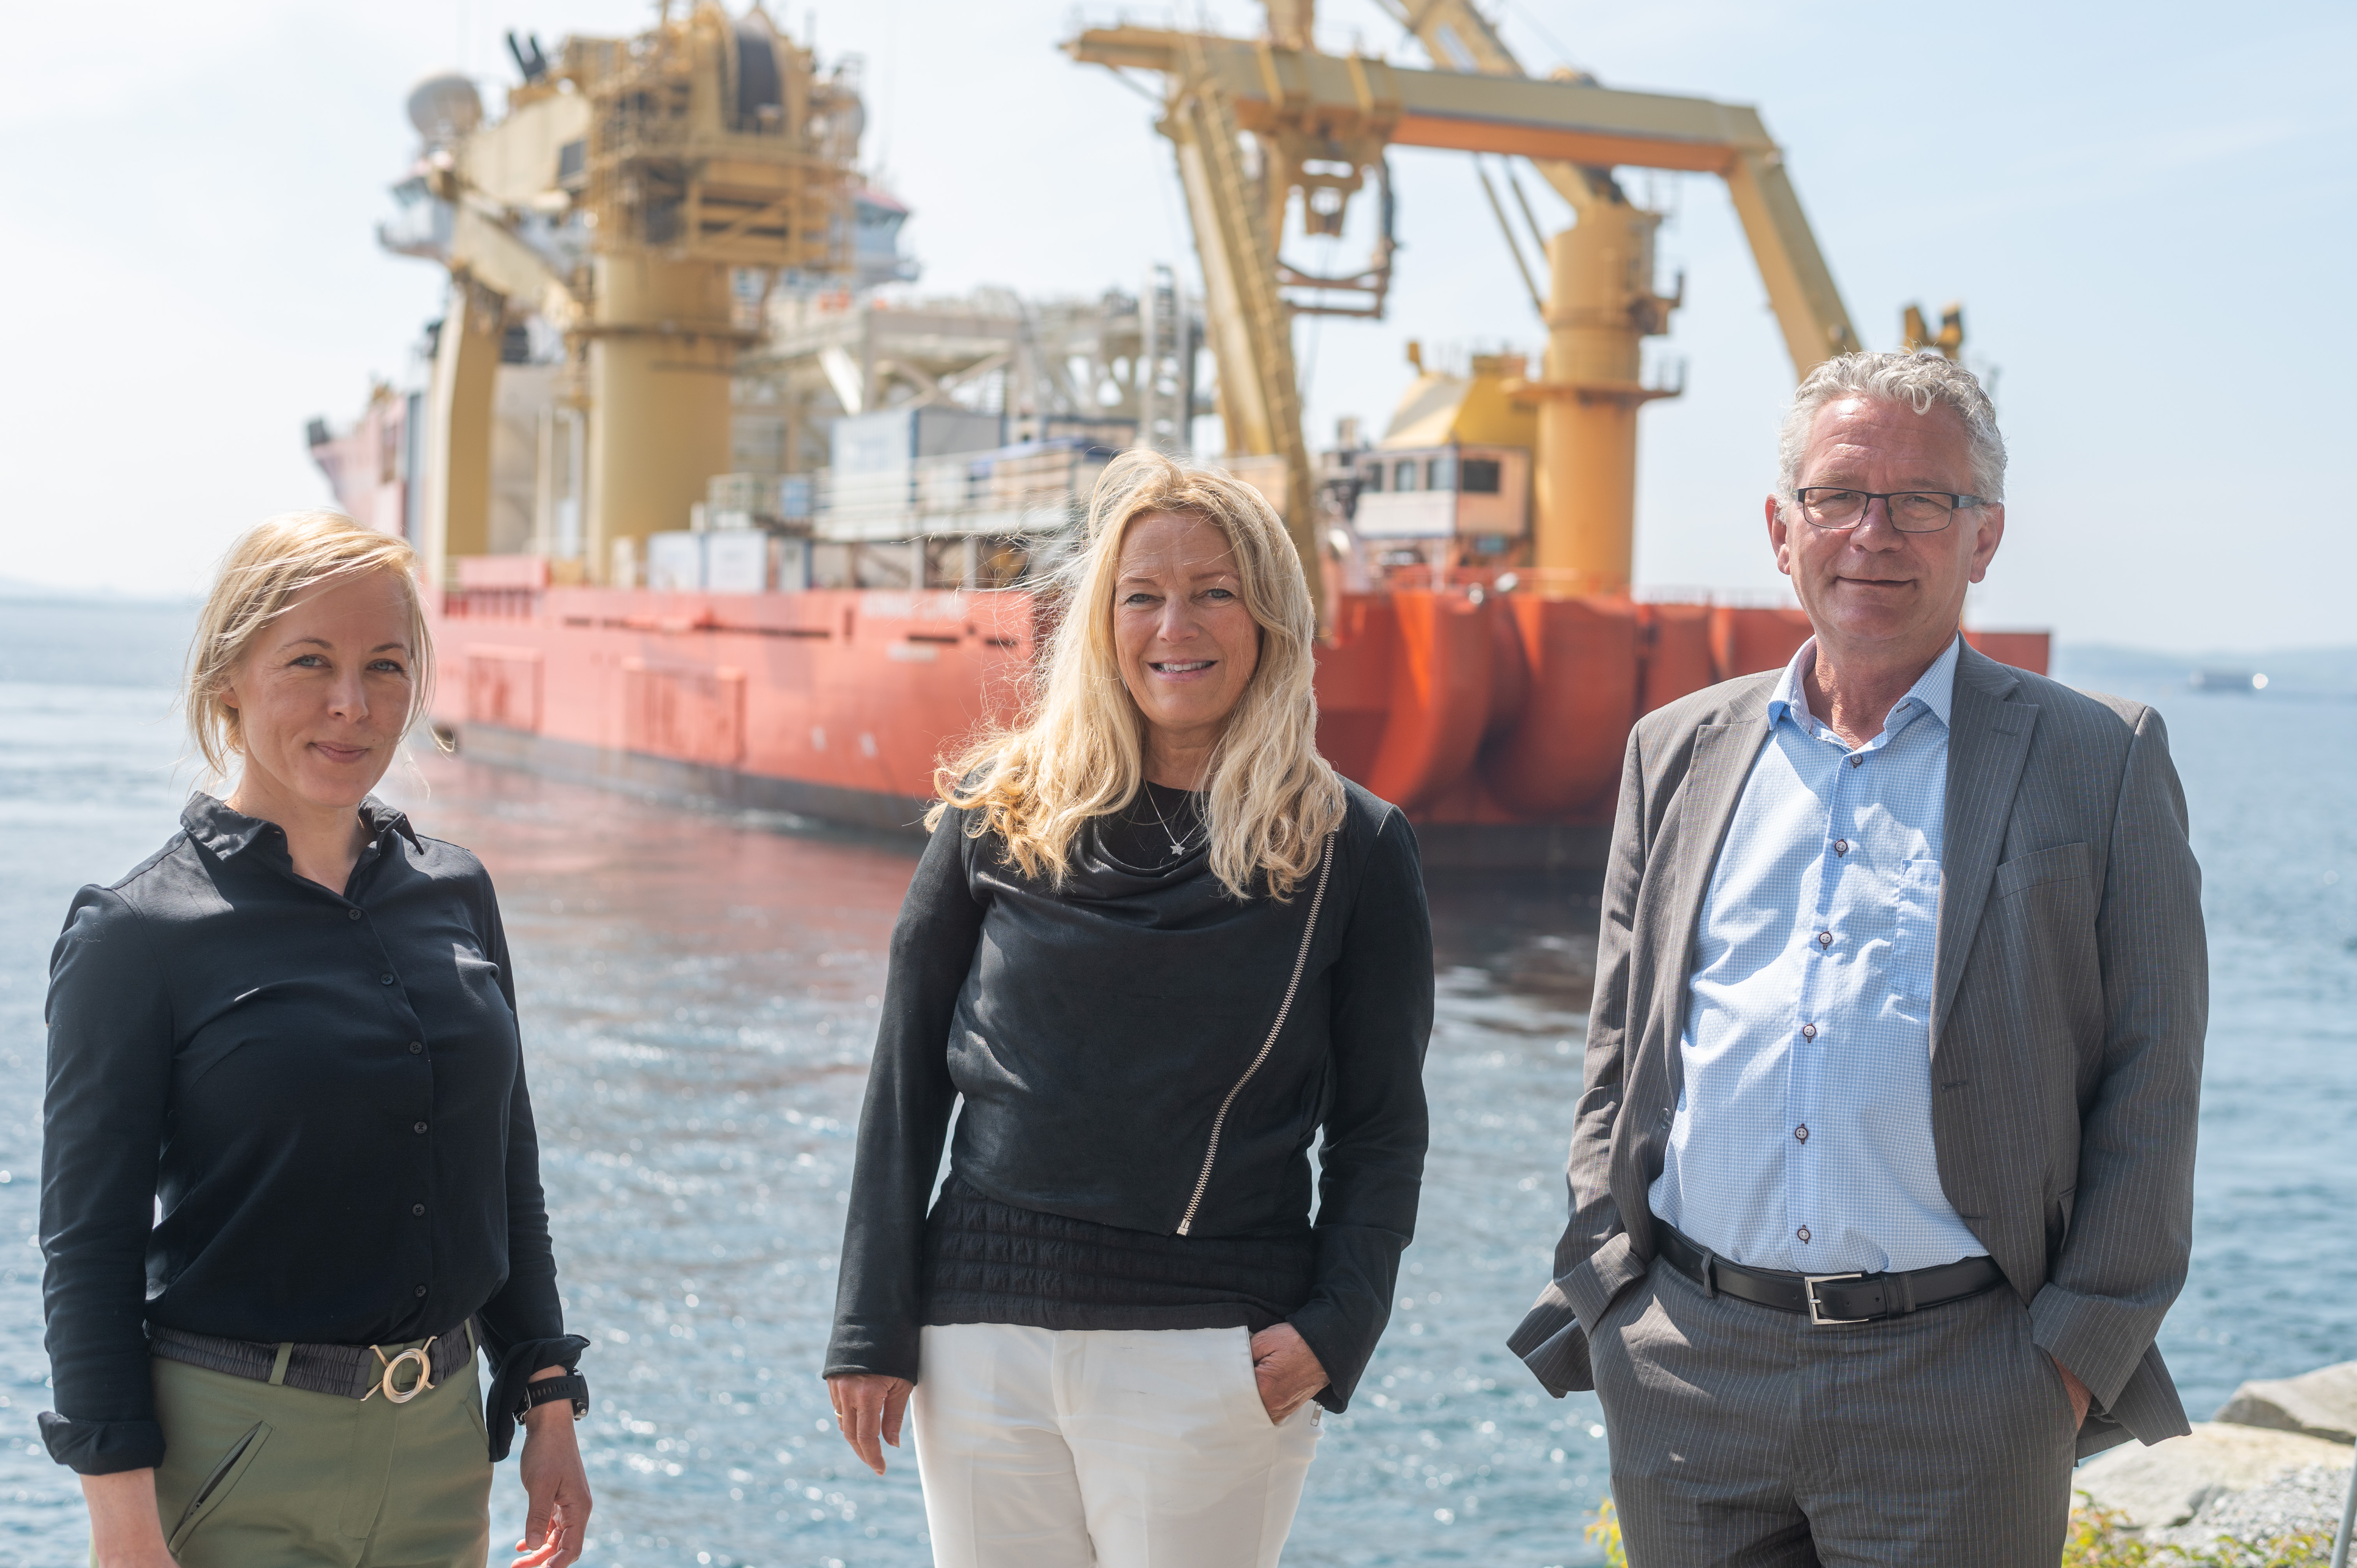 County Mayor of Rogaland, Marianne Chesak, Chairman of the board of Altibox, Toril Nag and Chairman of the board of NO UK COM, Geir Ims were among the guest celebrating the start of the installation process. (Photo: Halvard Bøe/Green Mountain).